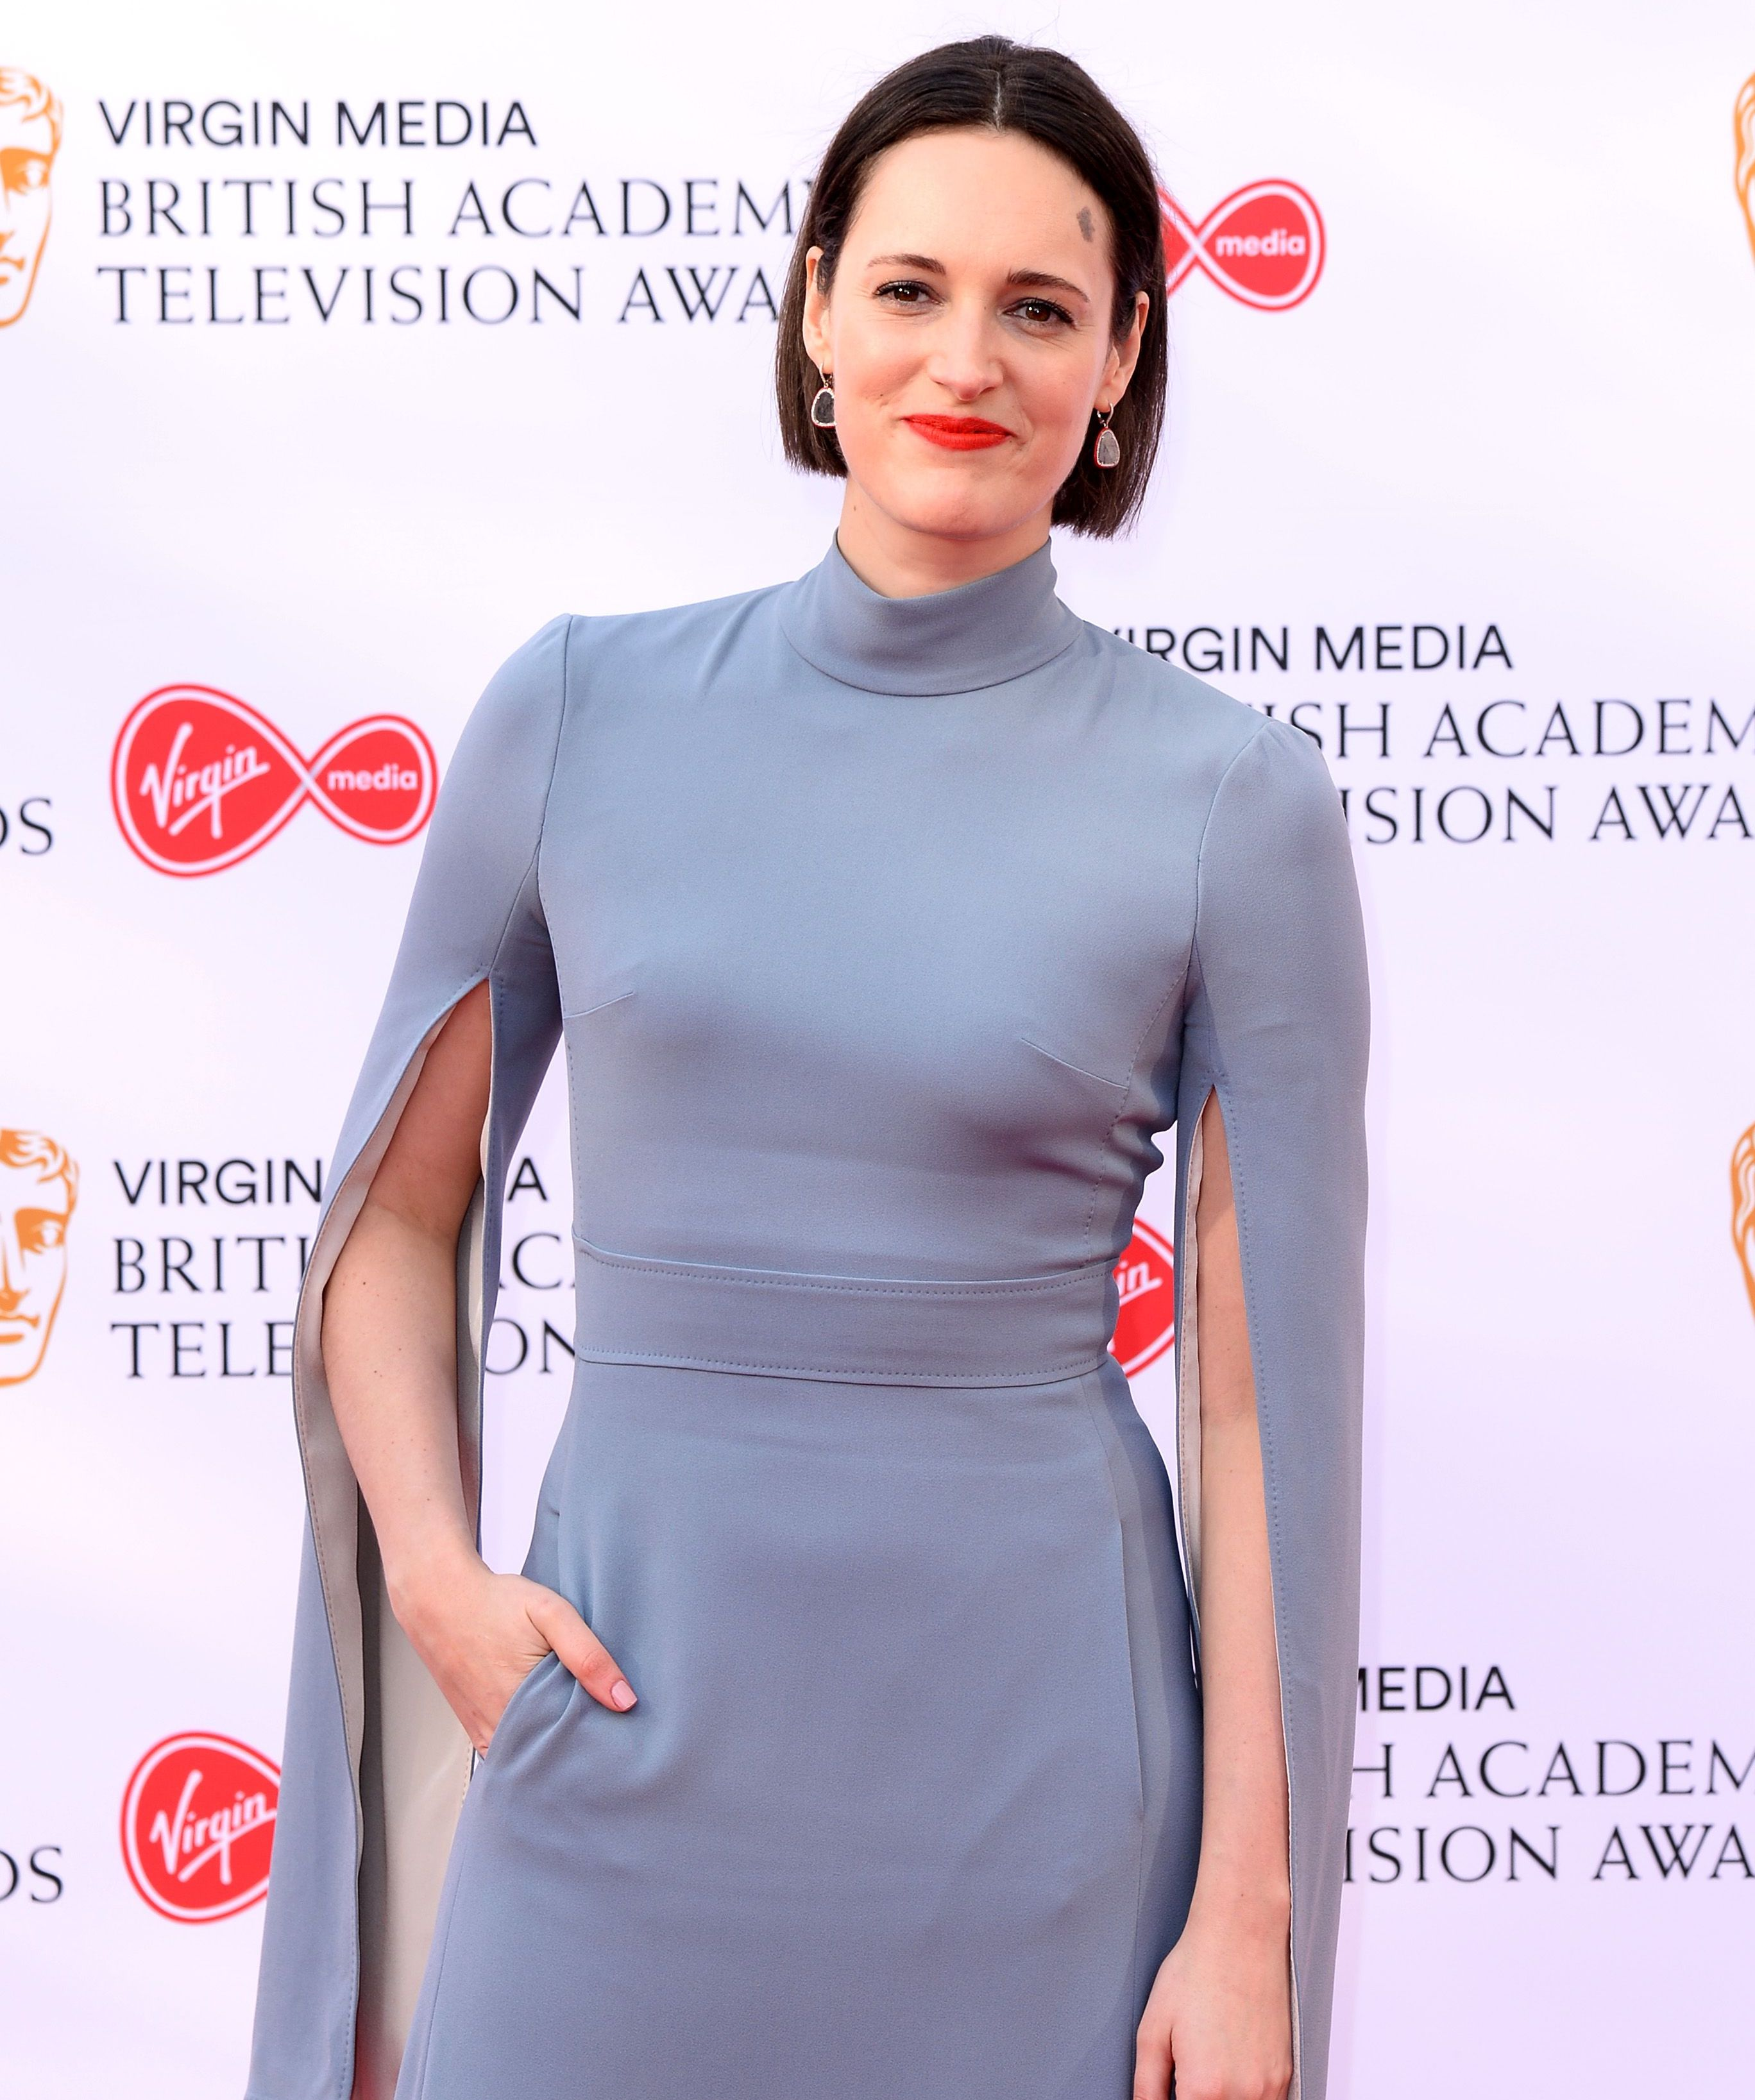 phoebe waller bridge attends the virgin media british news photo 1148688786 1557741102 10 Things You Didn't Know About Killing Eve